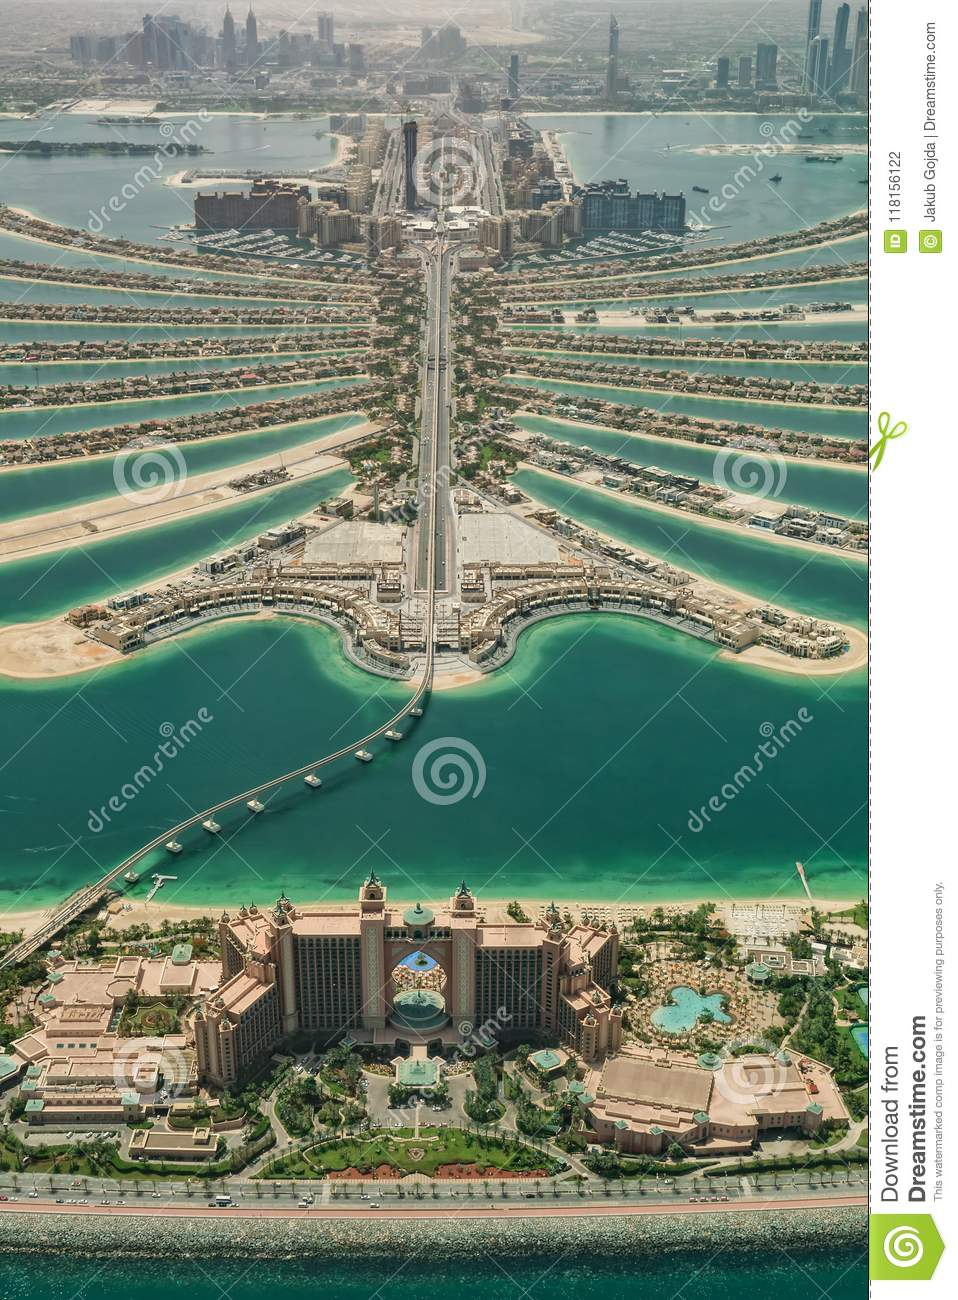 Aerial view of artificial palm island in Dubai.